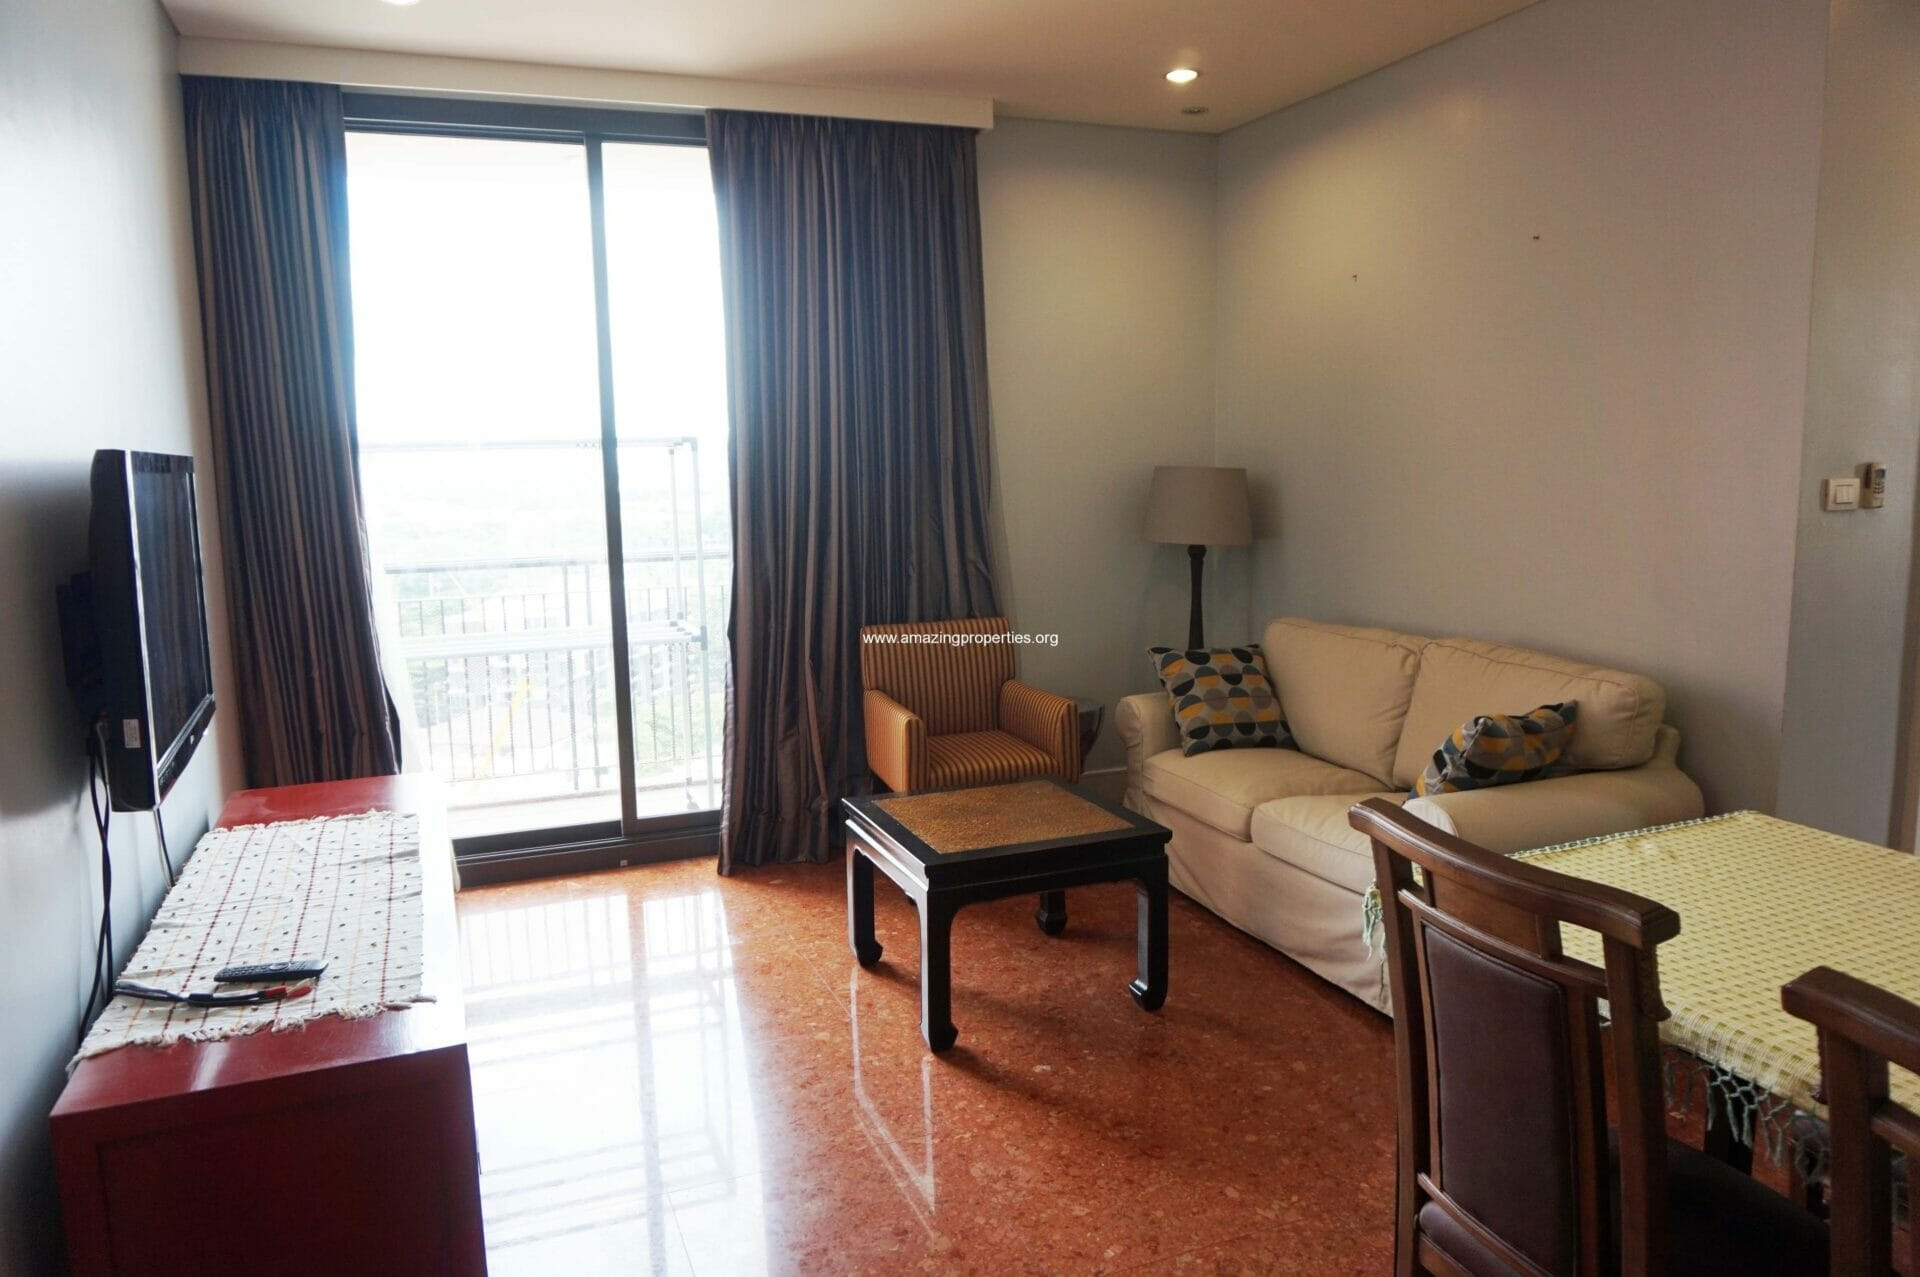 2 Bedroom Condo Aguston Sukhumvit 22